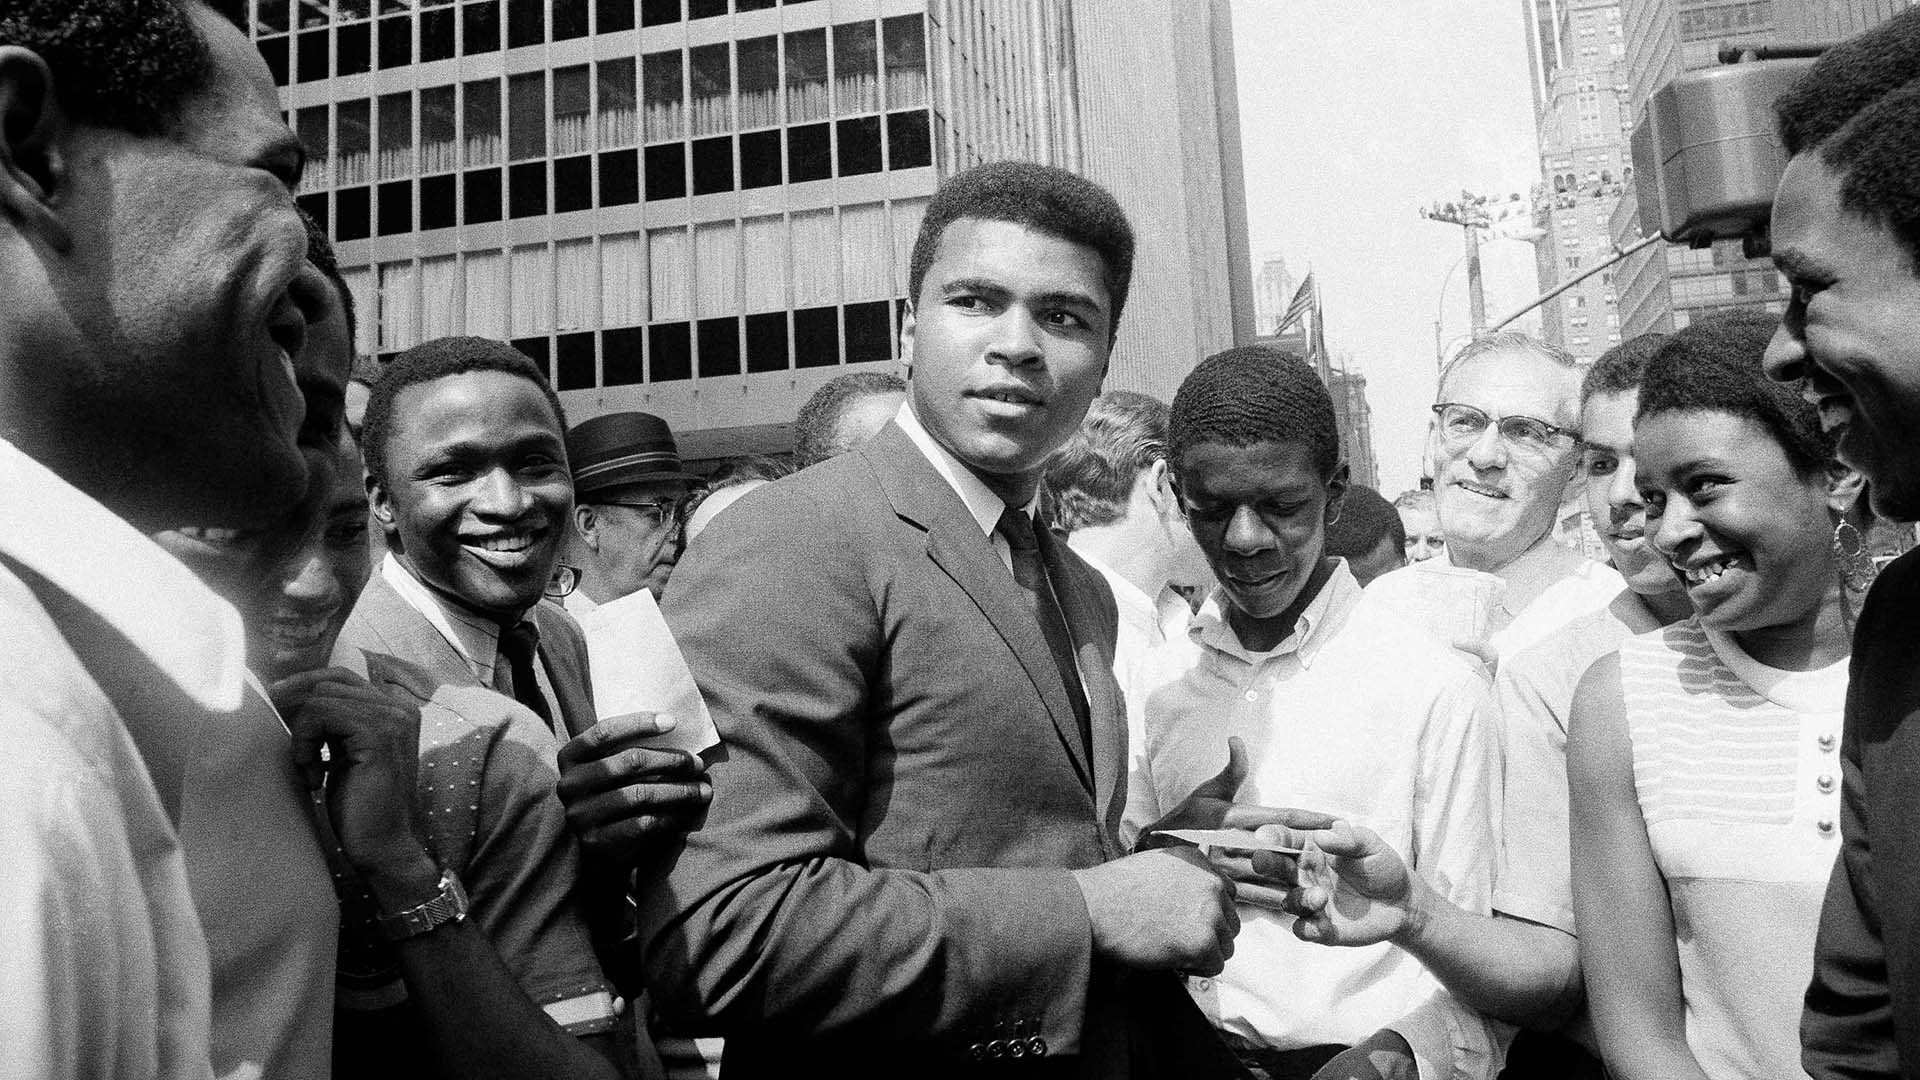 Muhammad Ali, is surrounded by autograph seekers at 51st Street and Sixth Avenue in Manhattan, New York. August 23, 1968.